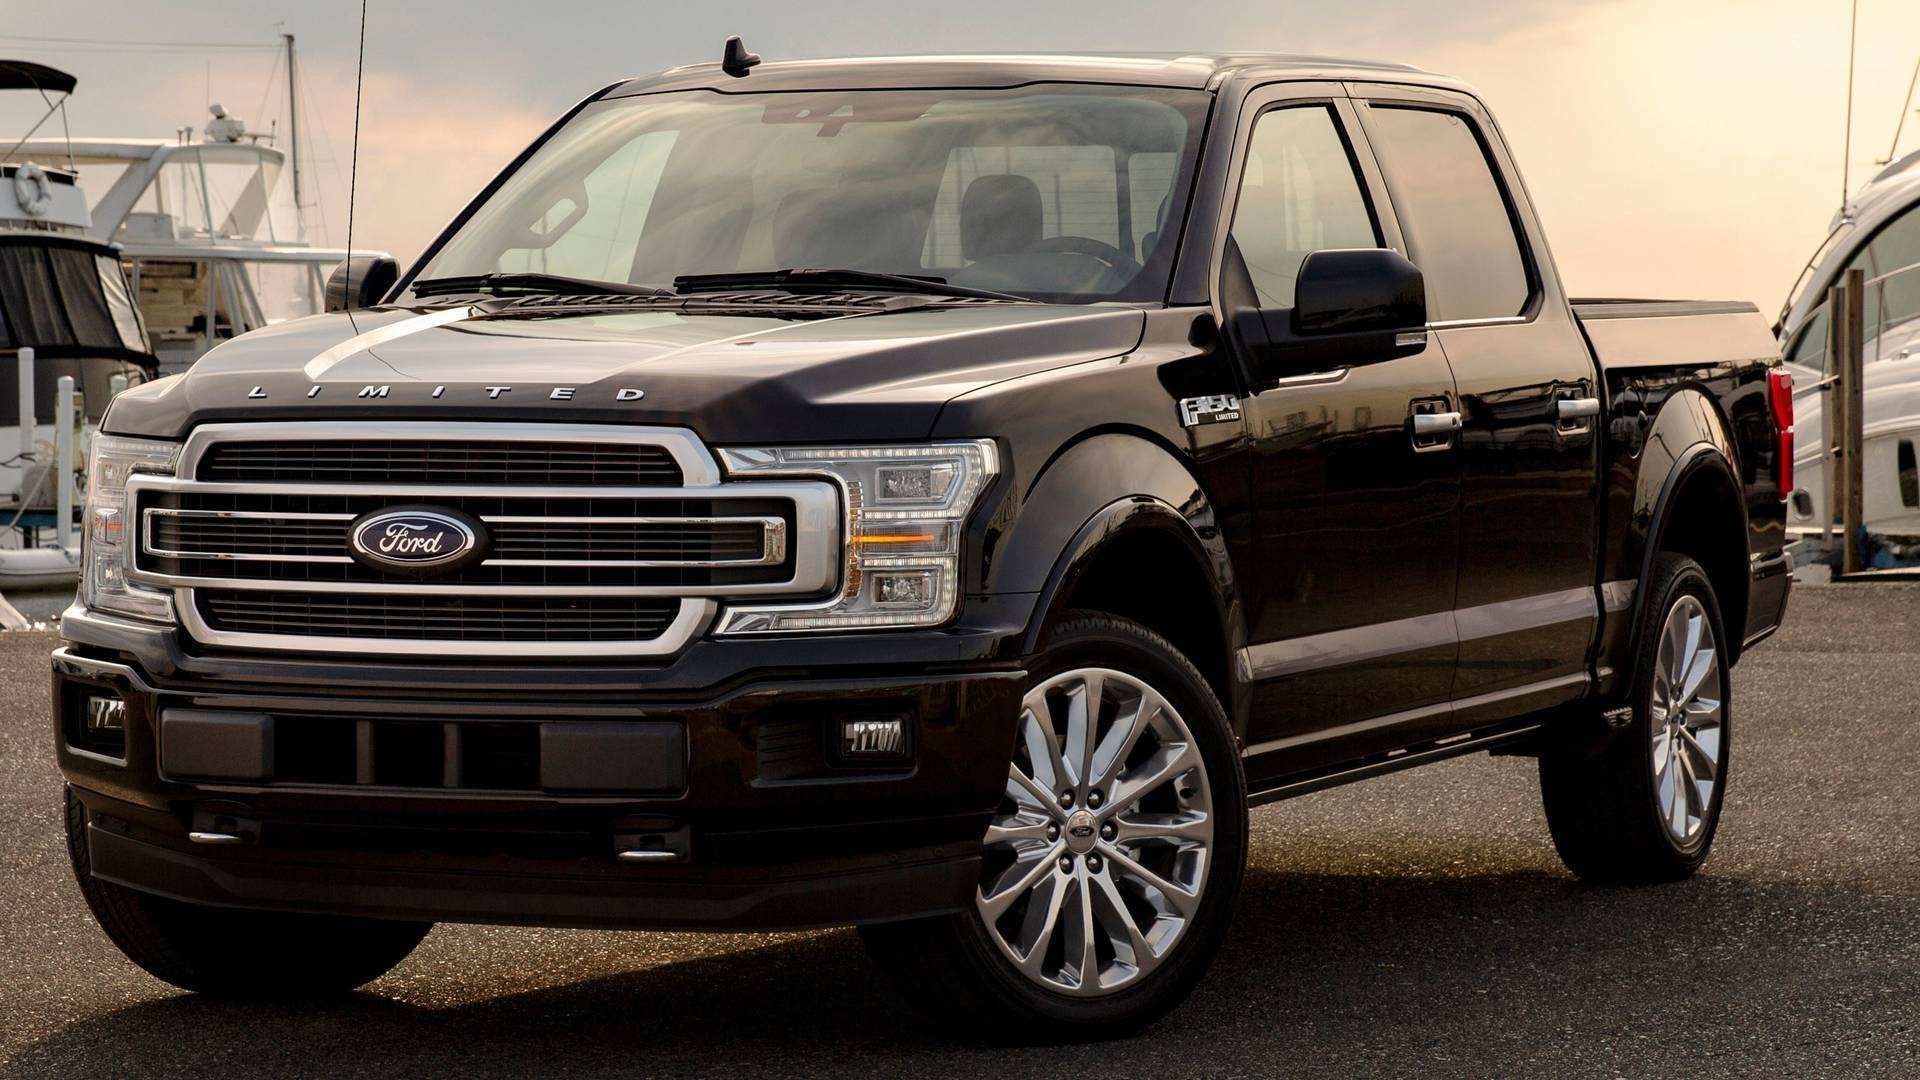 46 A 2019 Ford Lariat Price Engine